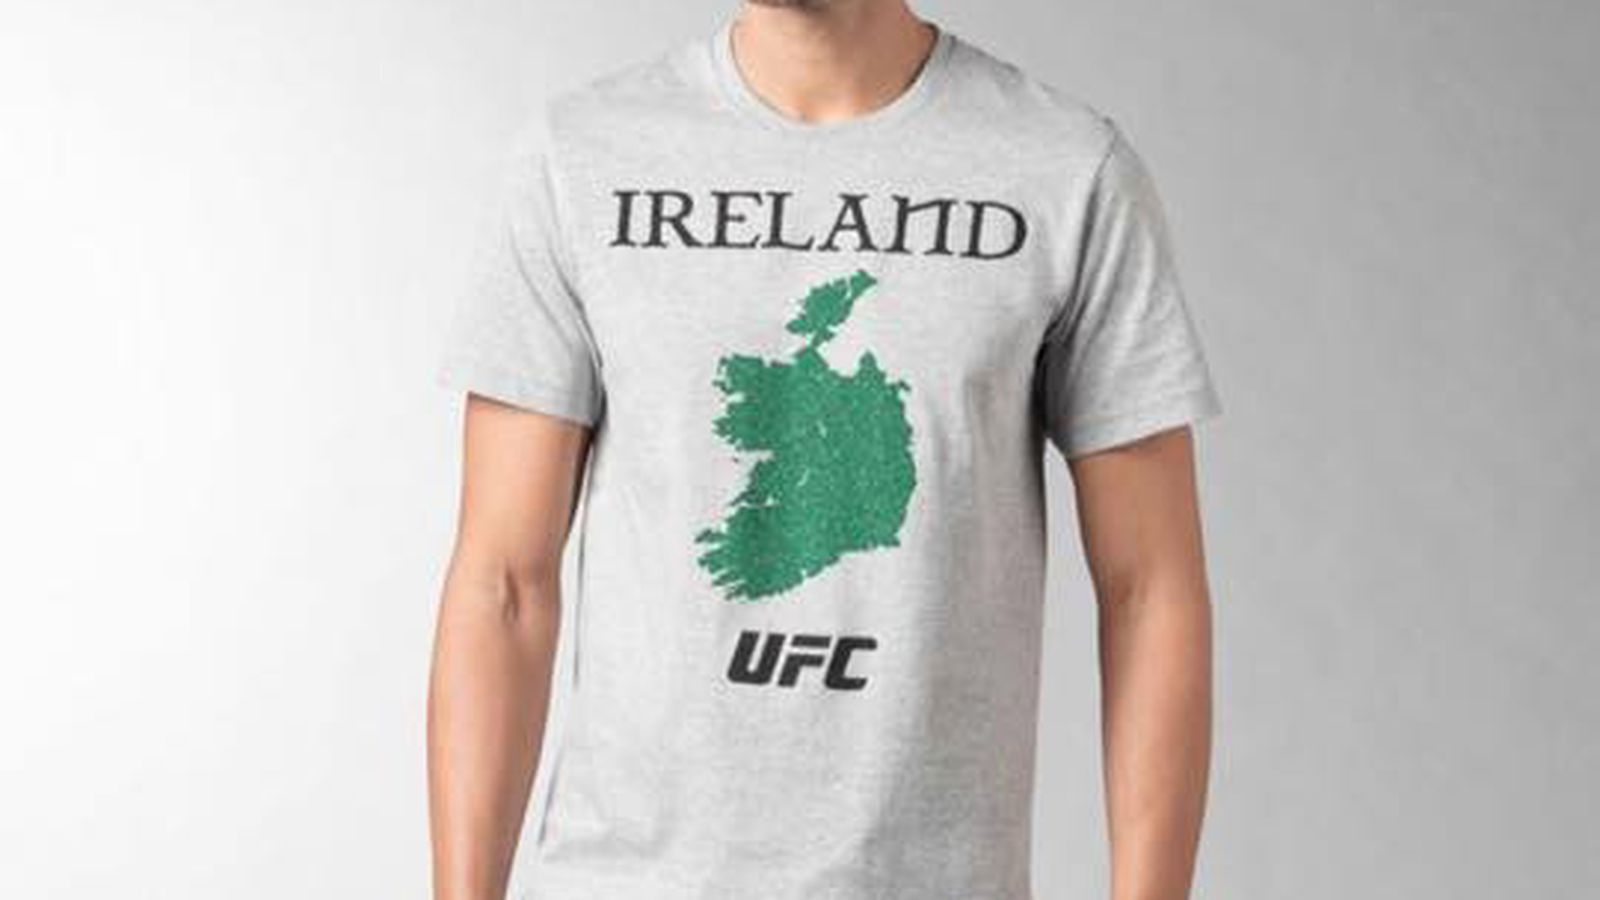 Reebok blames 39 design error 39 for controversial ufc ireland for Controversial t shirts uk